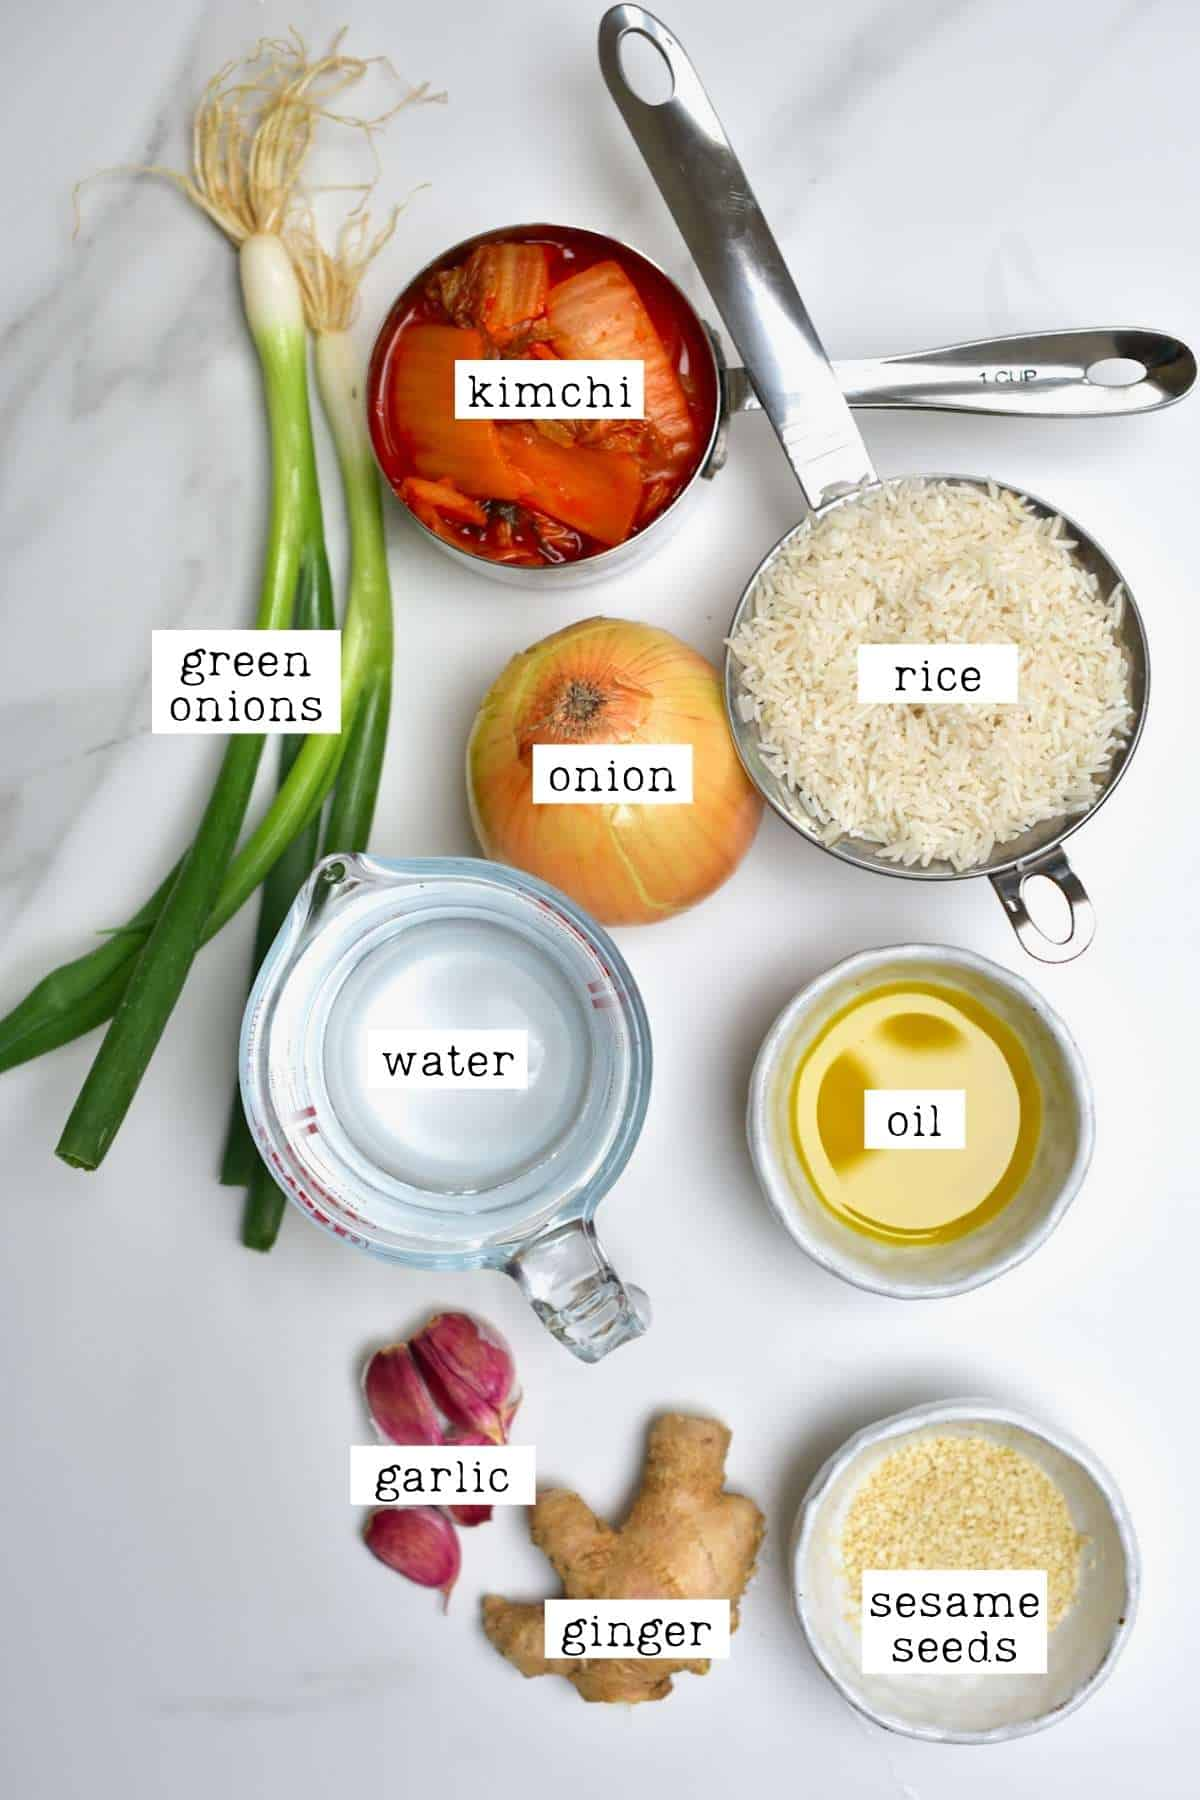 Ingredients for kimchi rice